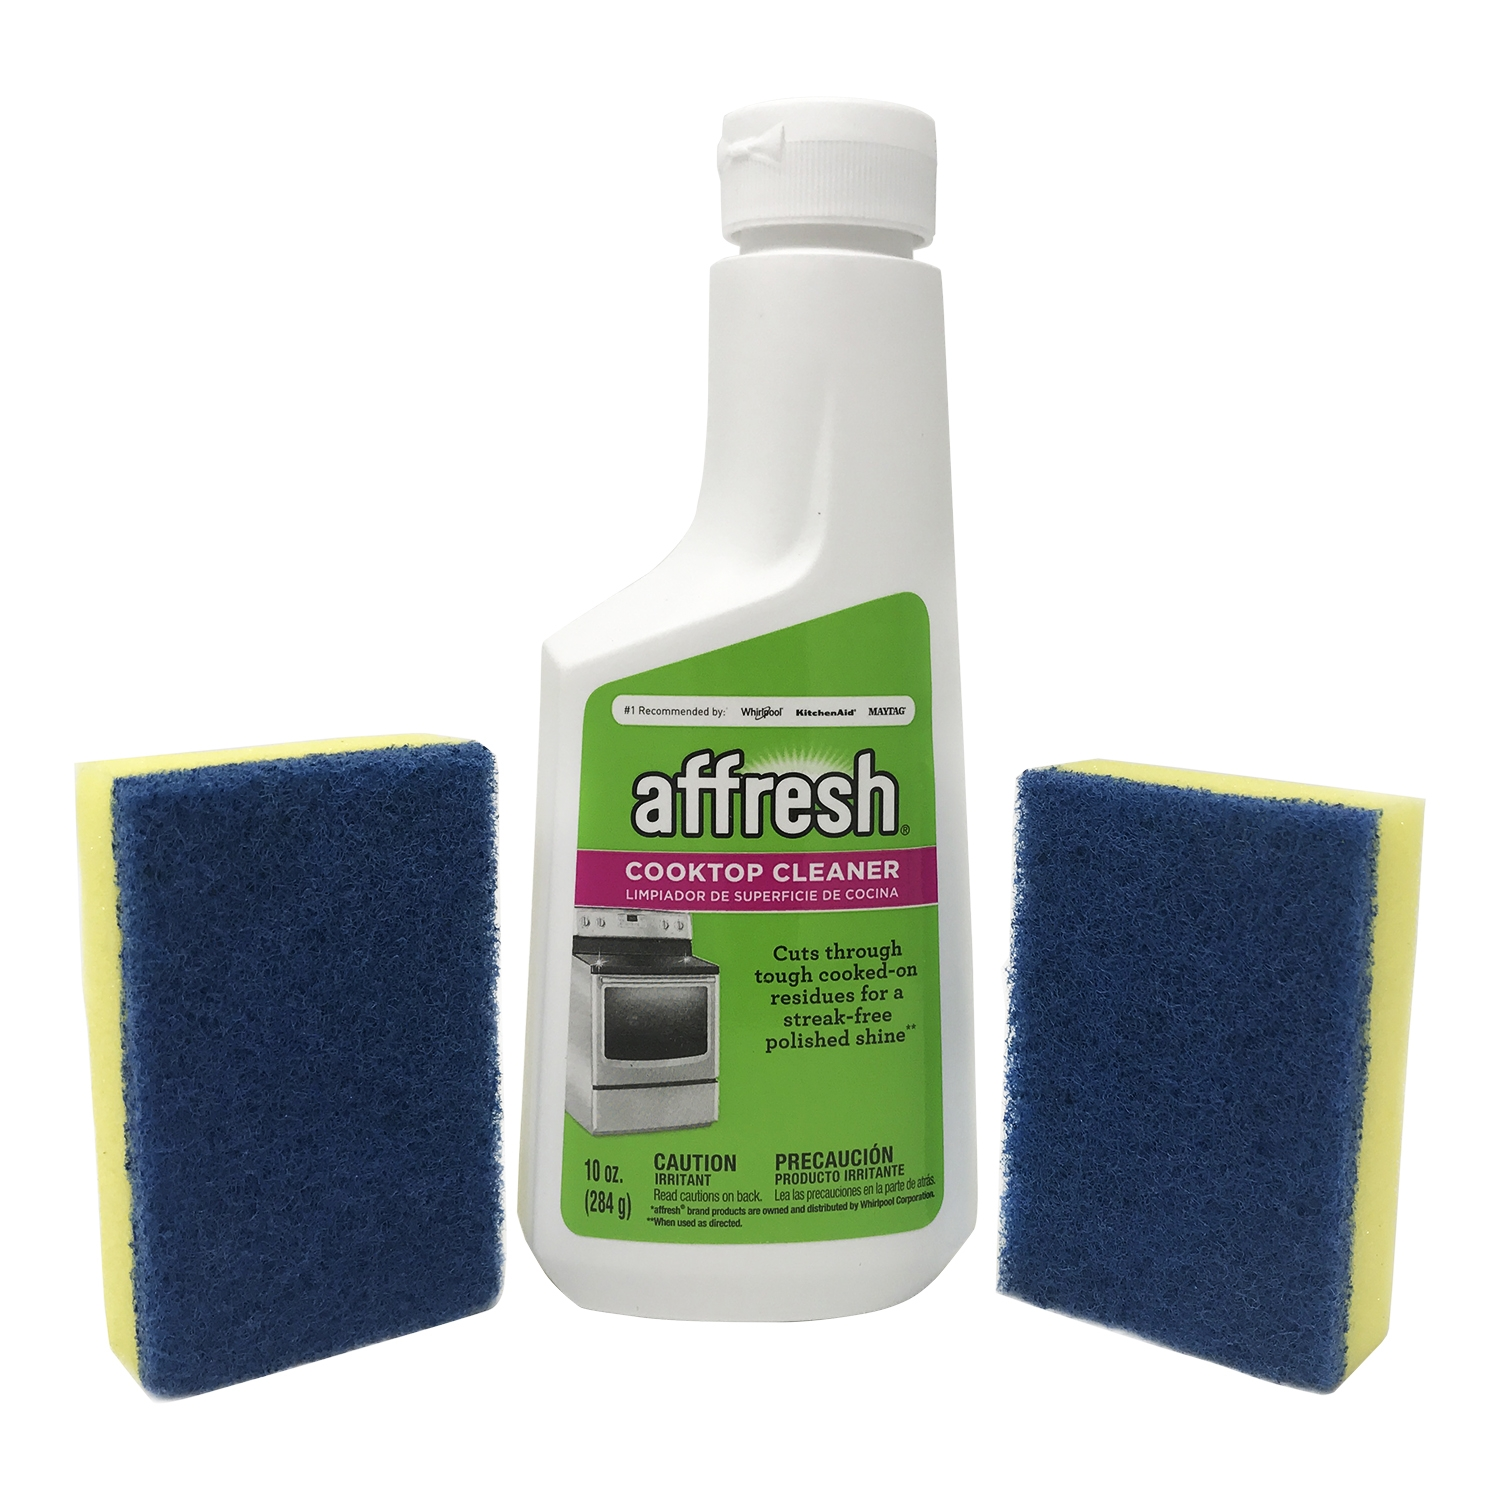 W10355051 Whirlpool Appliance Affresh Cooktop Cleaner